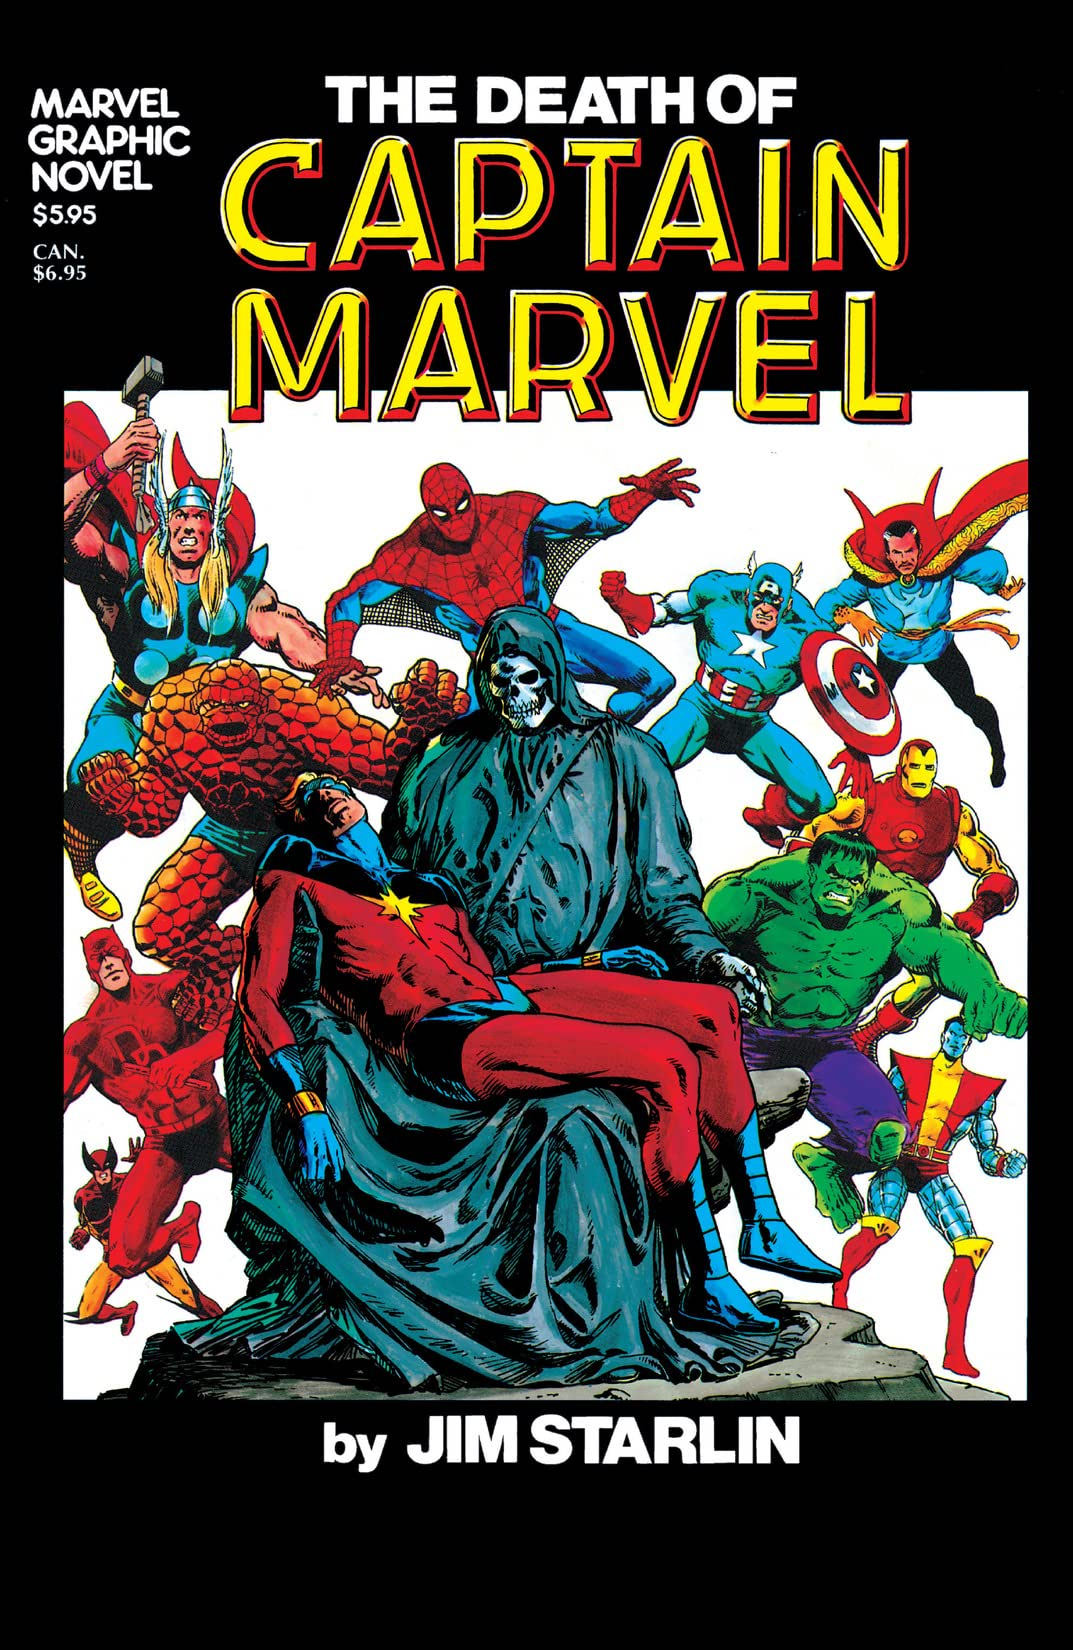 Marvel Graphic Novel #1: The Death of Captain Marvel